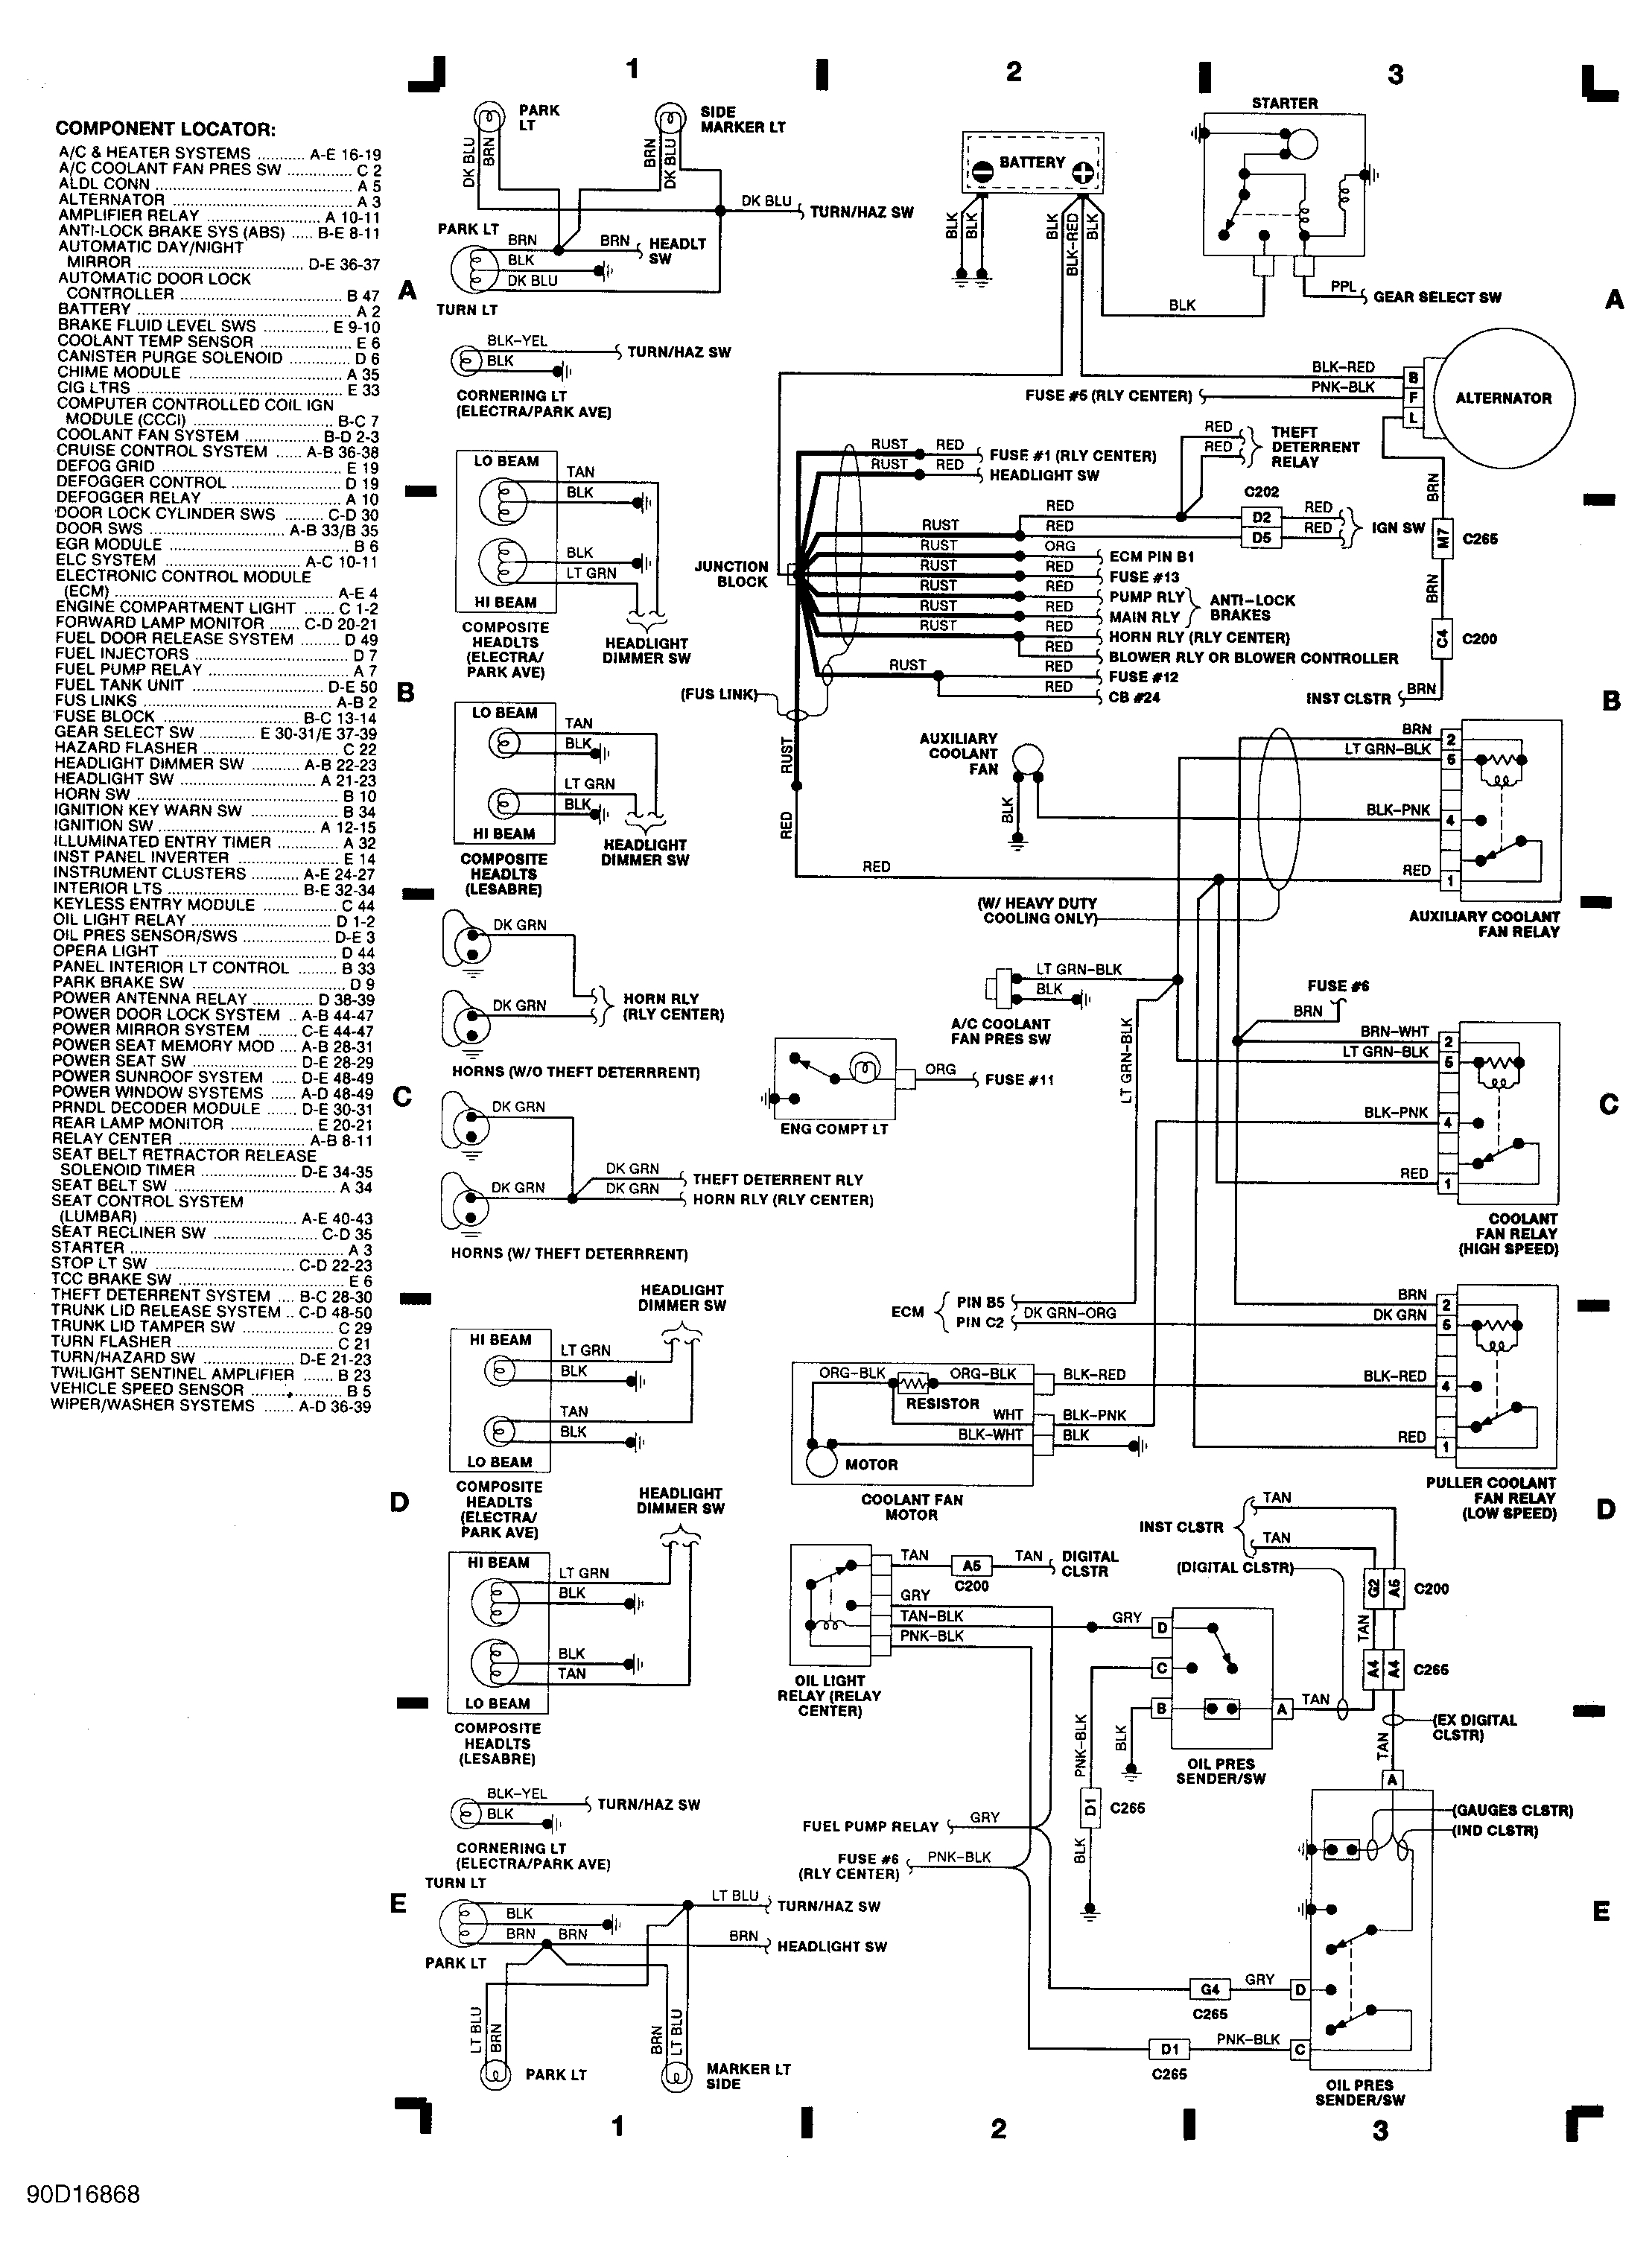 1990 Chevy Lumina Wiring Diagram Detailed Schematics Chev P30 Schematic Diagrams 92 1500 Transmission Buick Lesabre Cooling